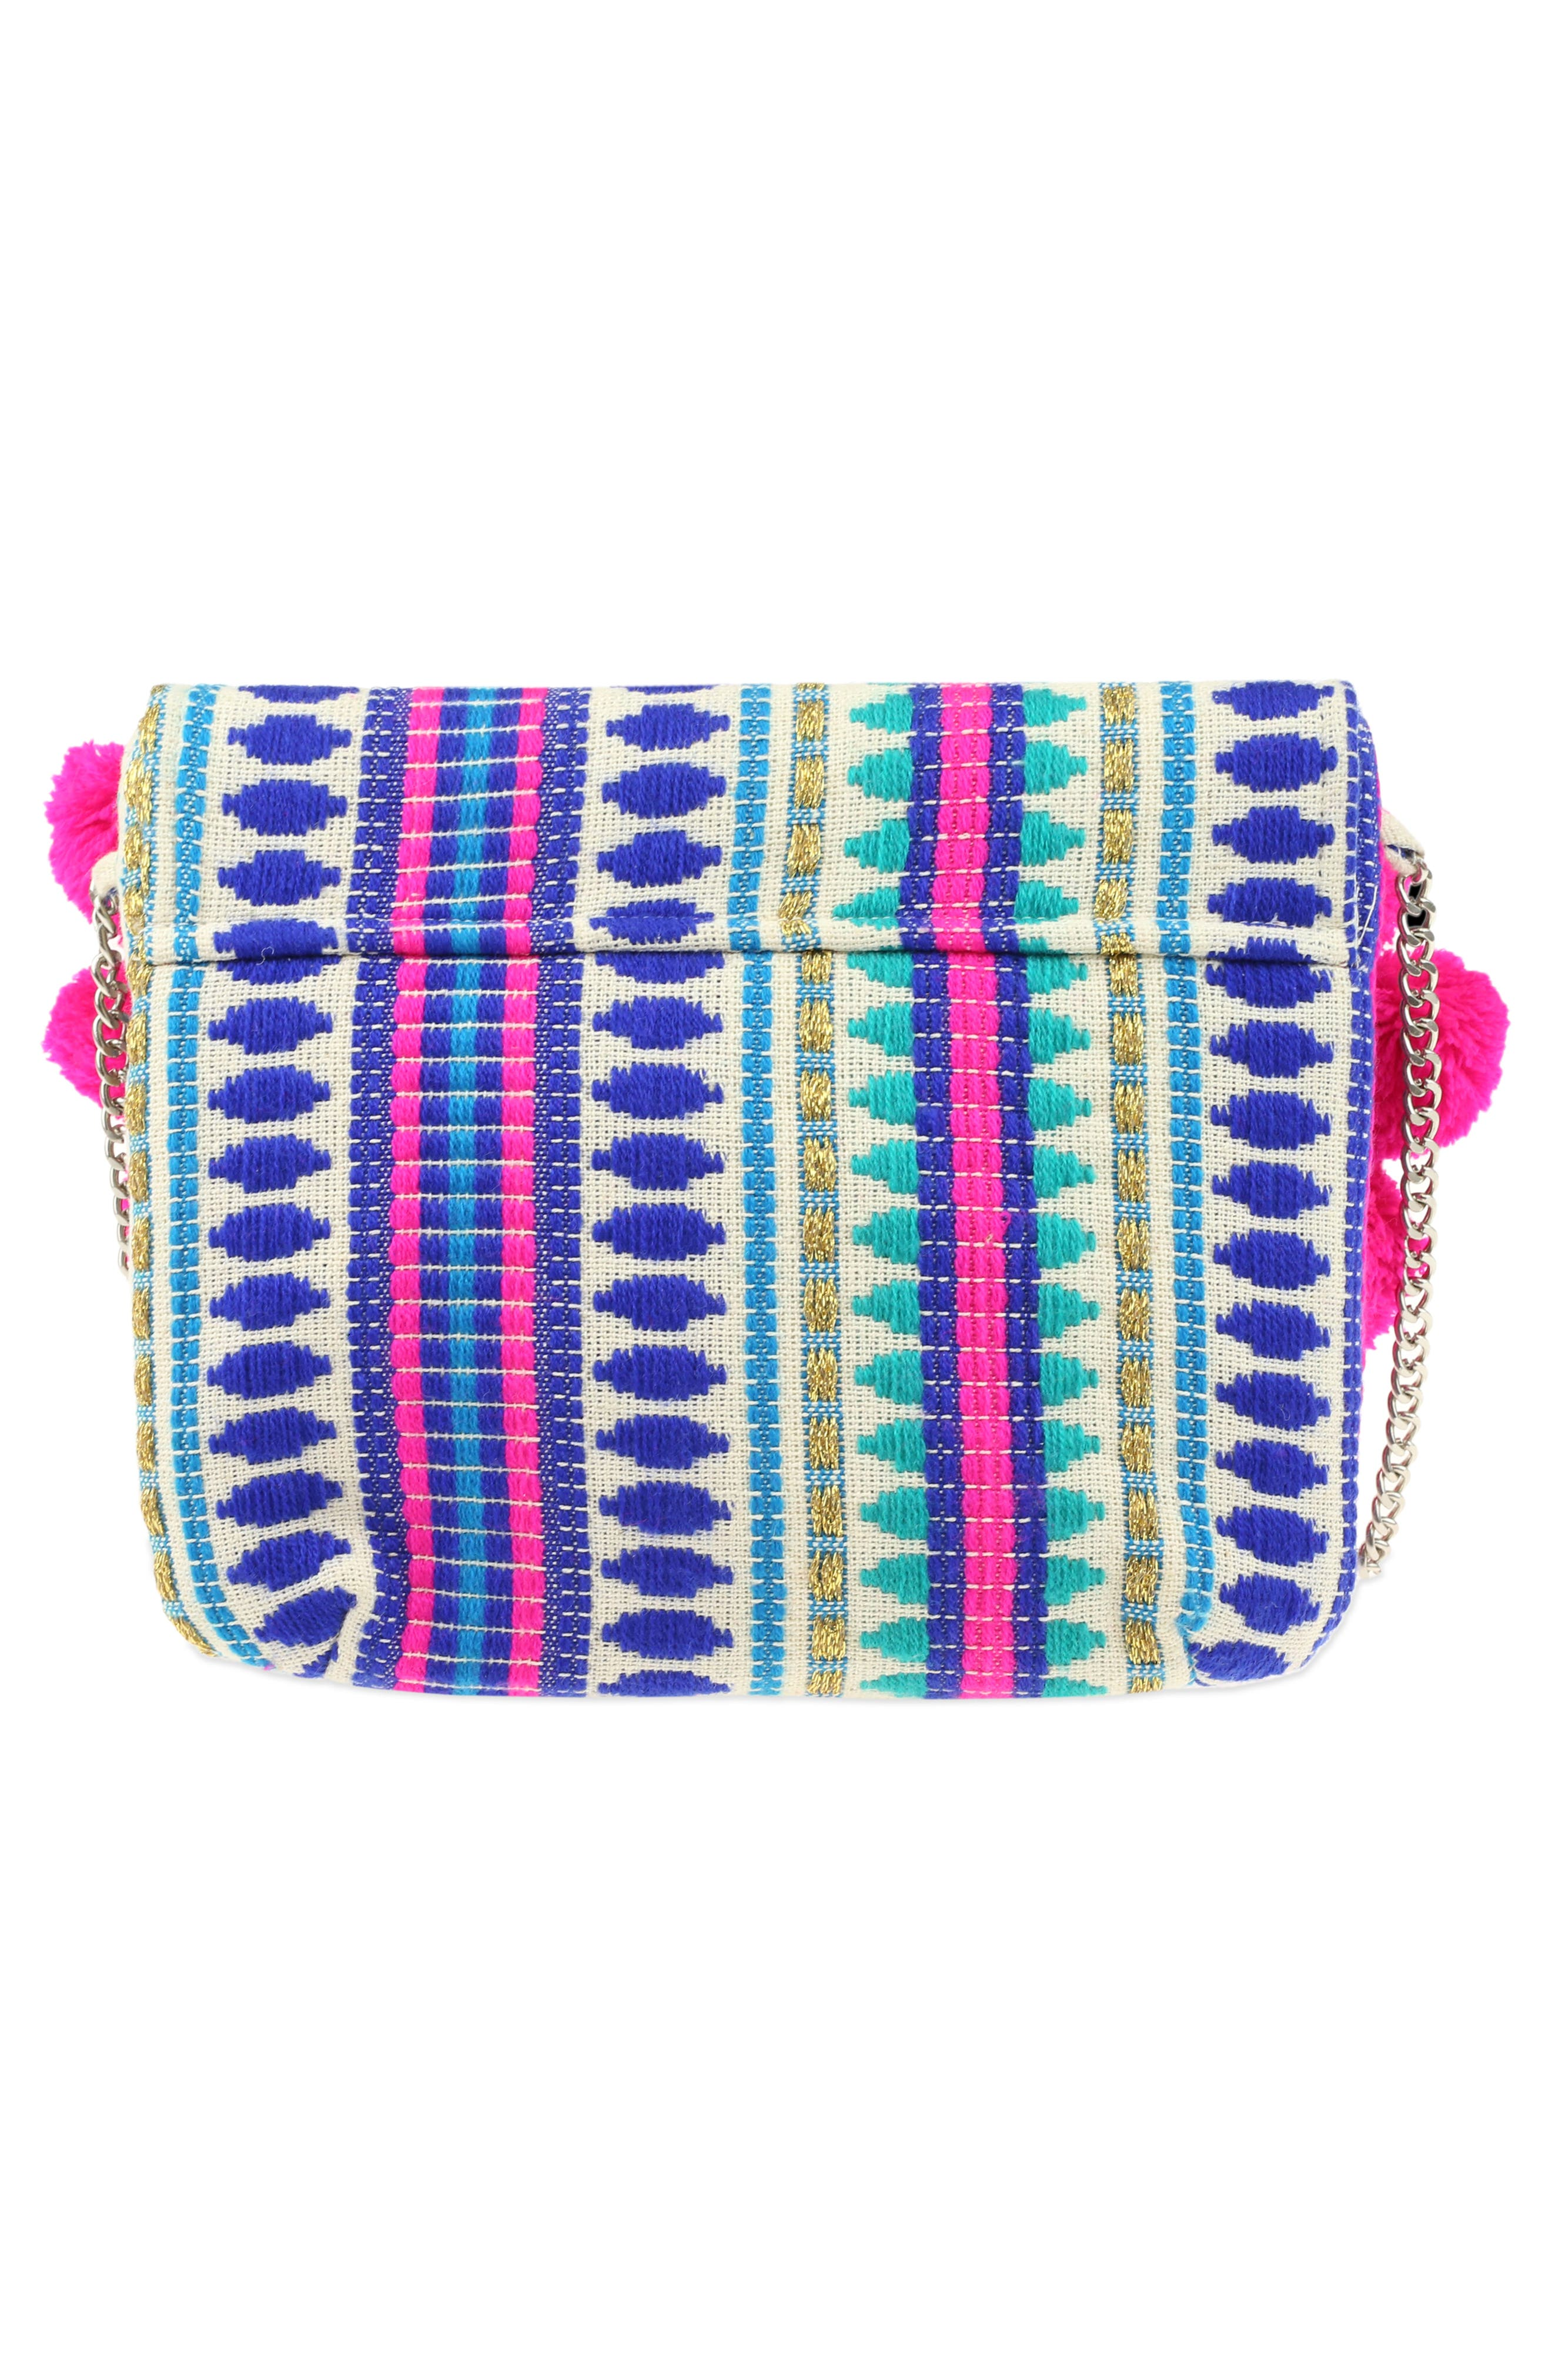 Embroidered Crossbody Bag,                             Alternate thumbnail 2, color,